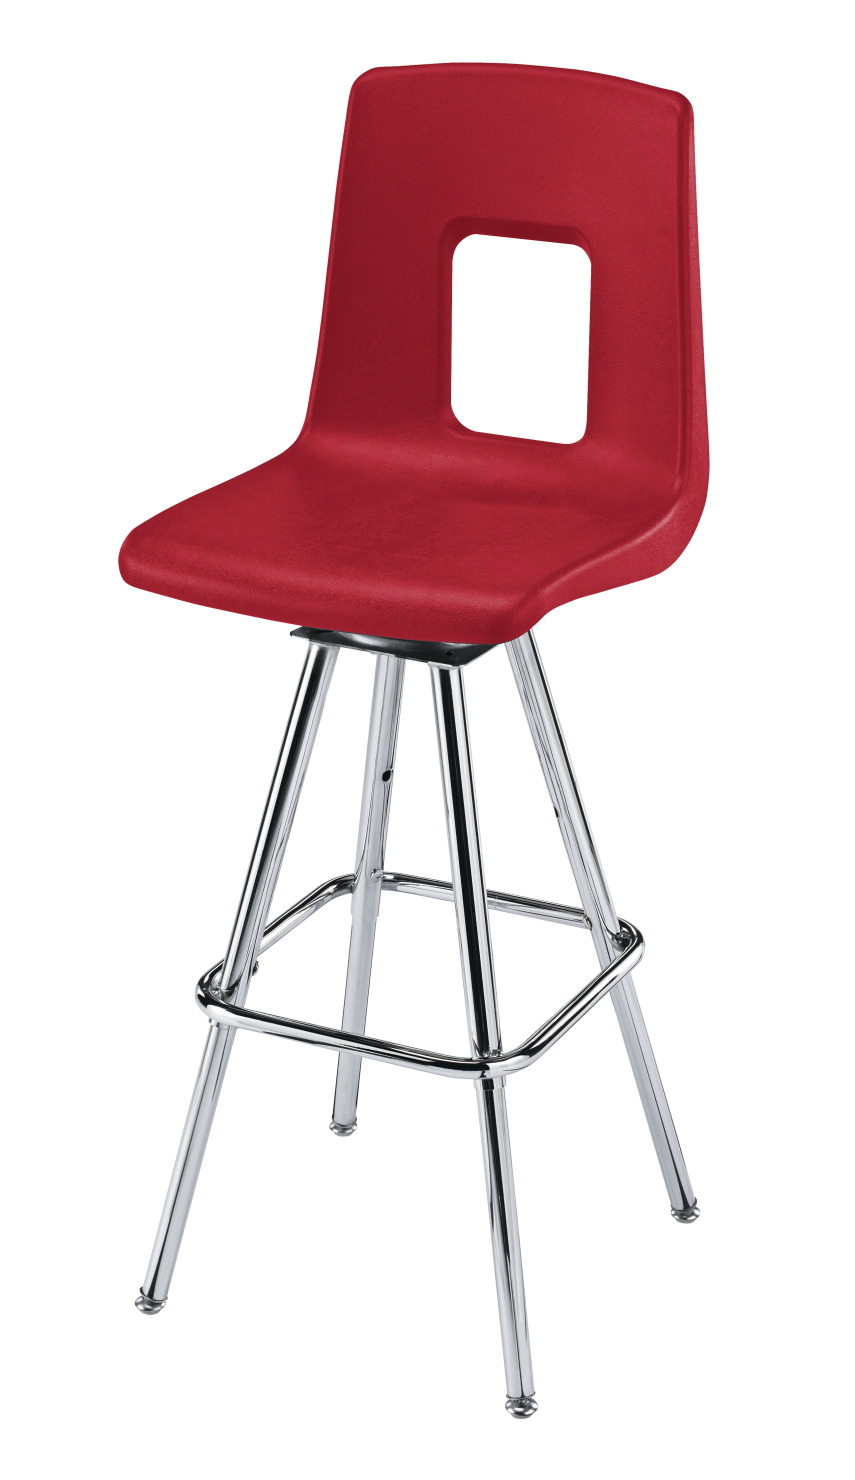 Classroom Select Traditional Swivel Stool, Adjustable Height, A+ Shell, Chrome Frame, Various Options